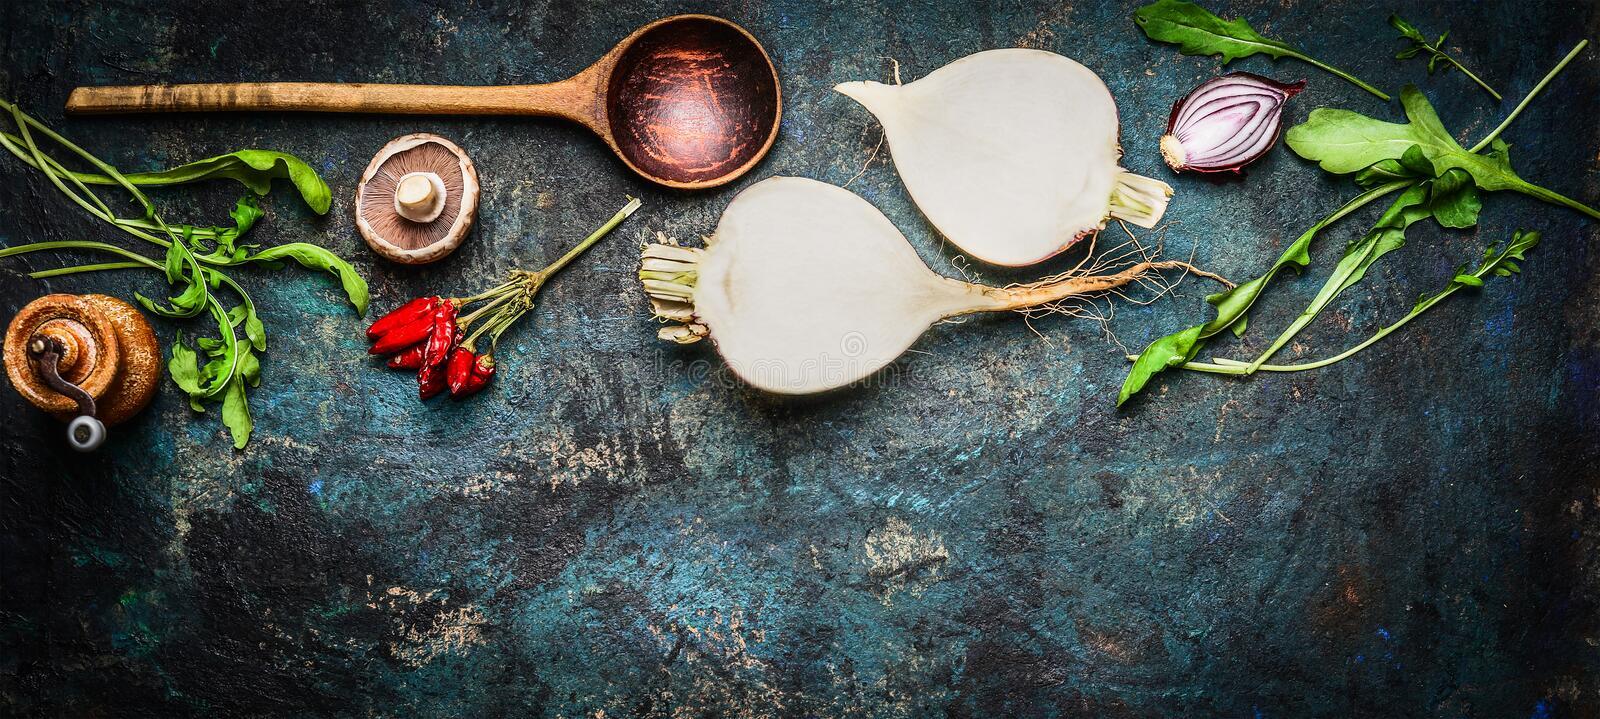 Root vegetables with wooden spoon and fresh ingredients for healthily cooking on rustic background, top view, banner. royalty free stock photography